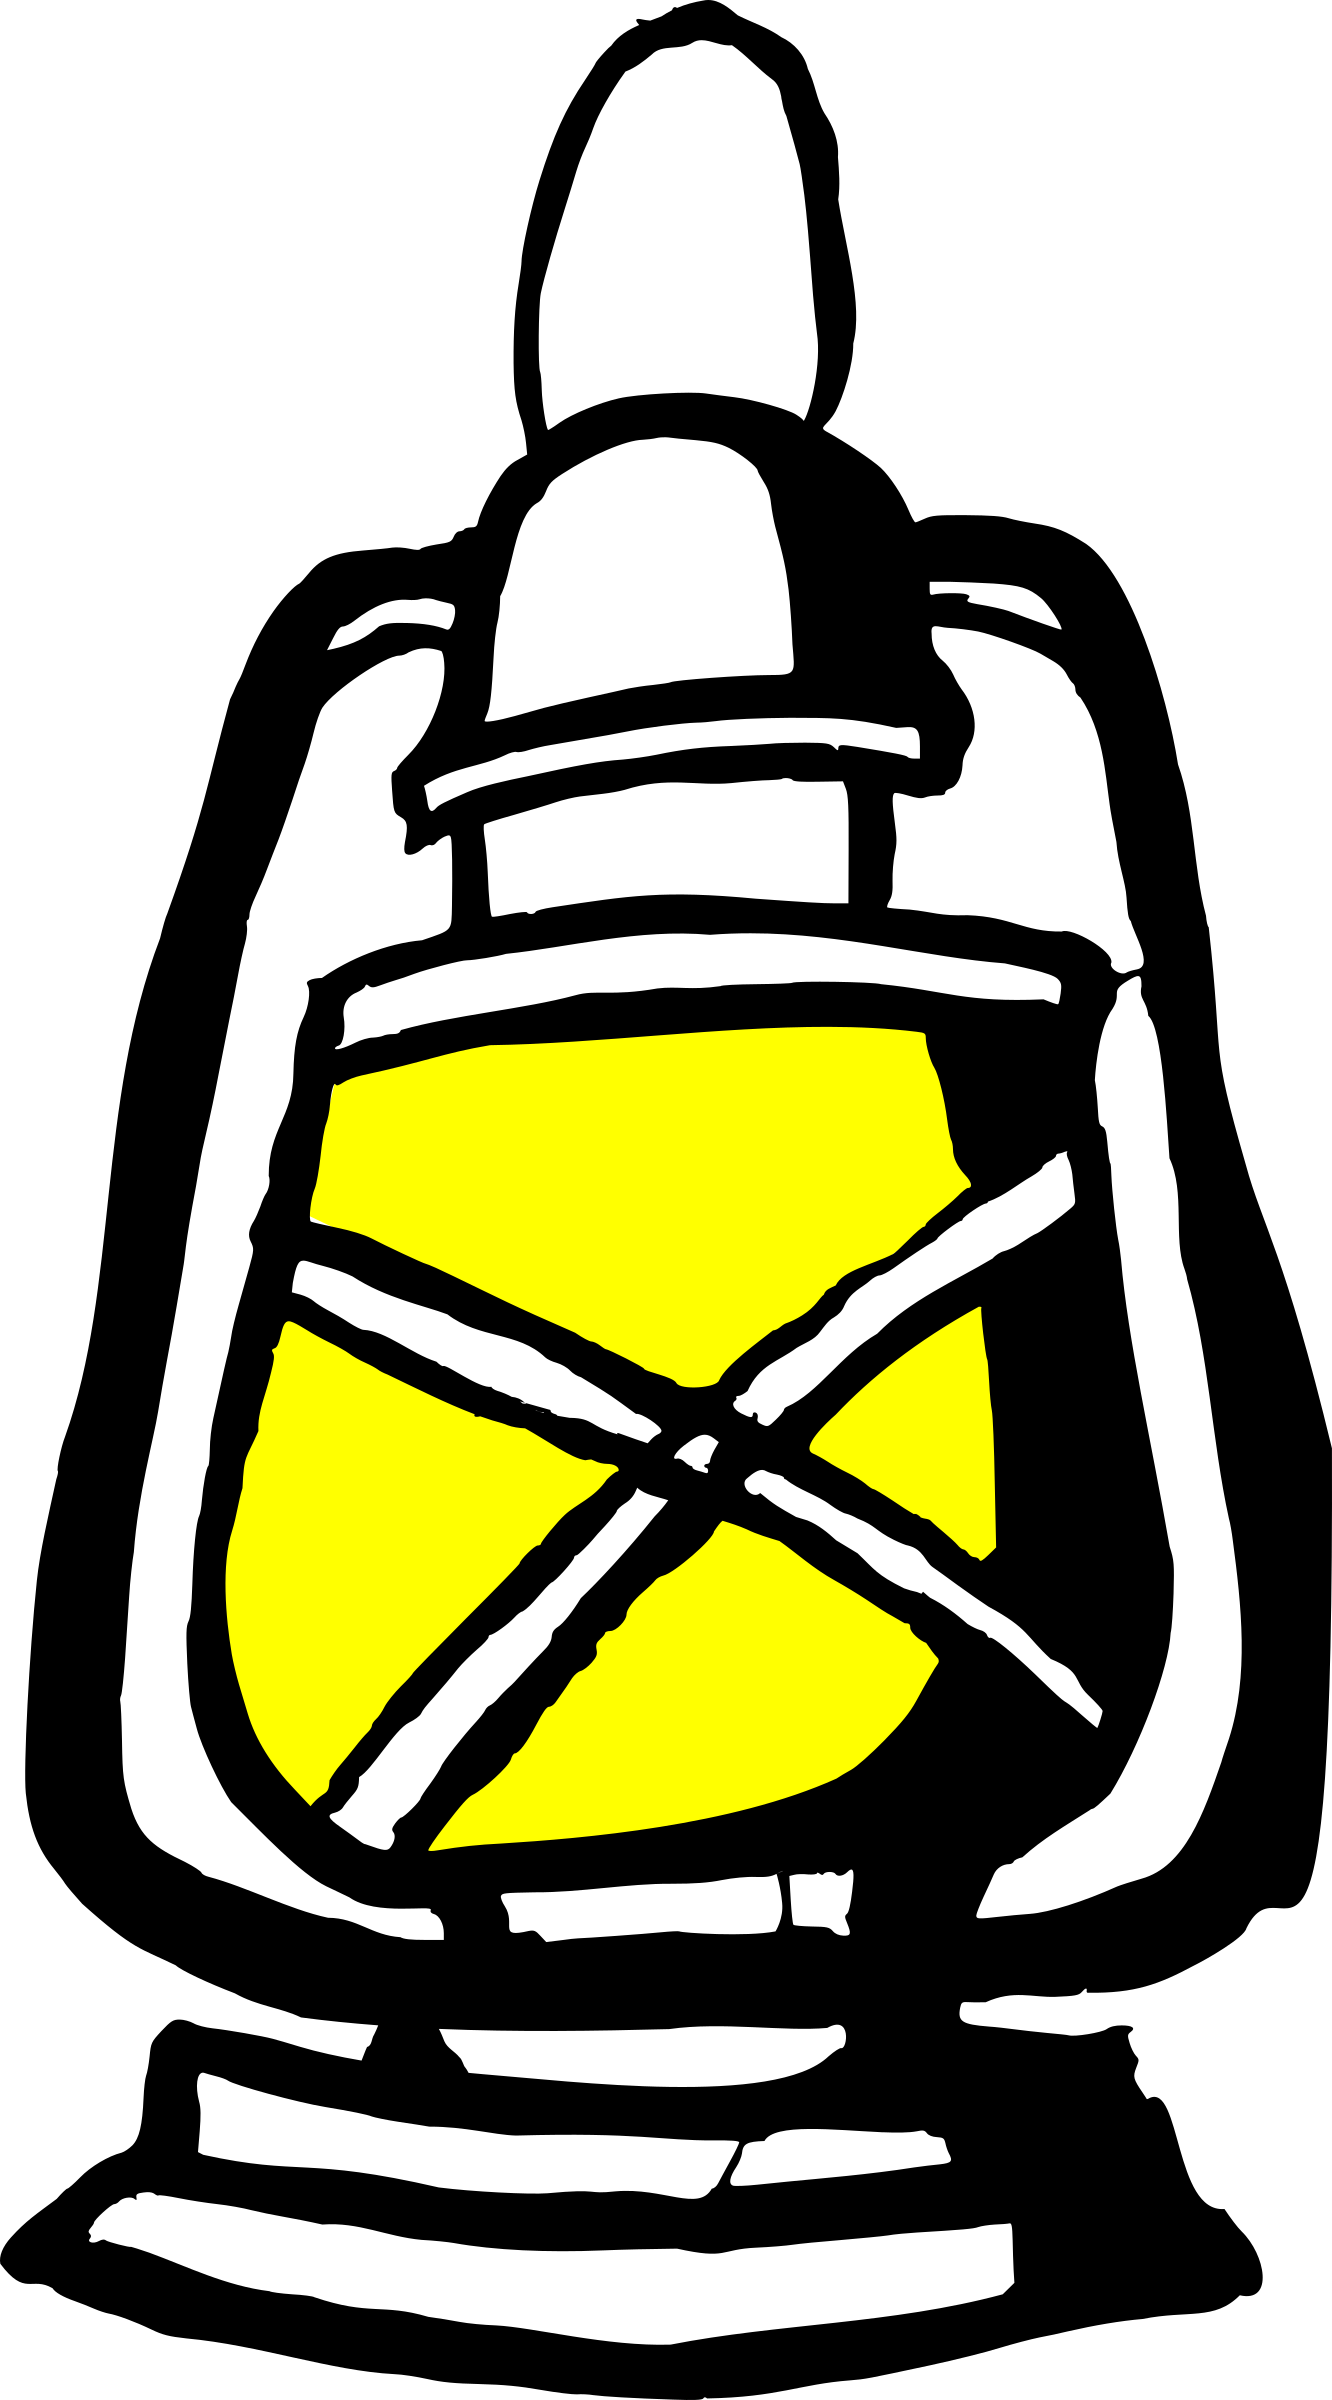 lantern with yellow light by mr.lex